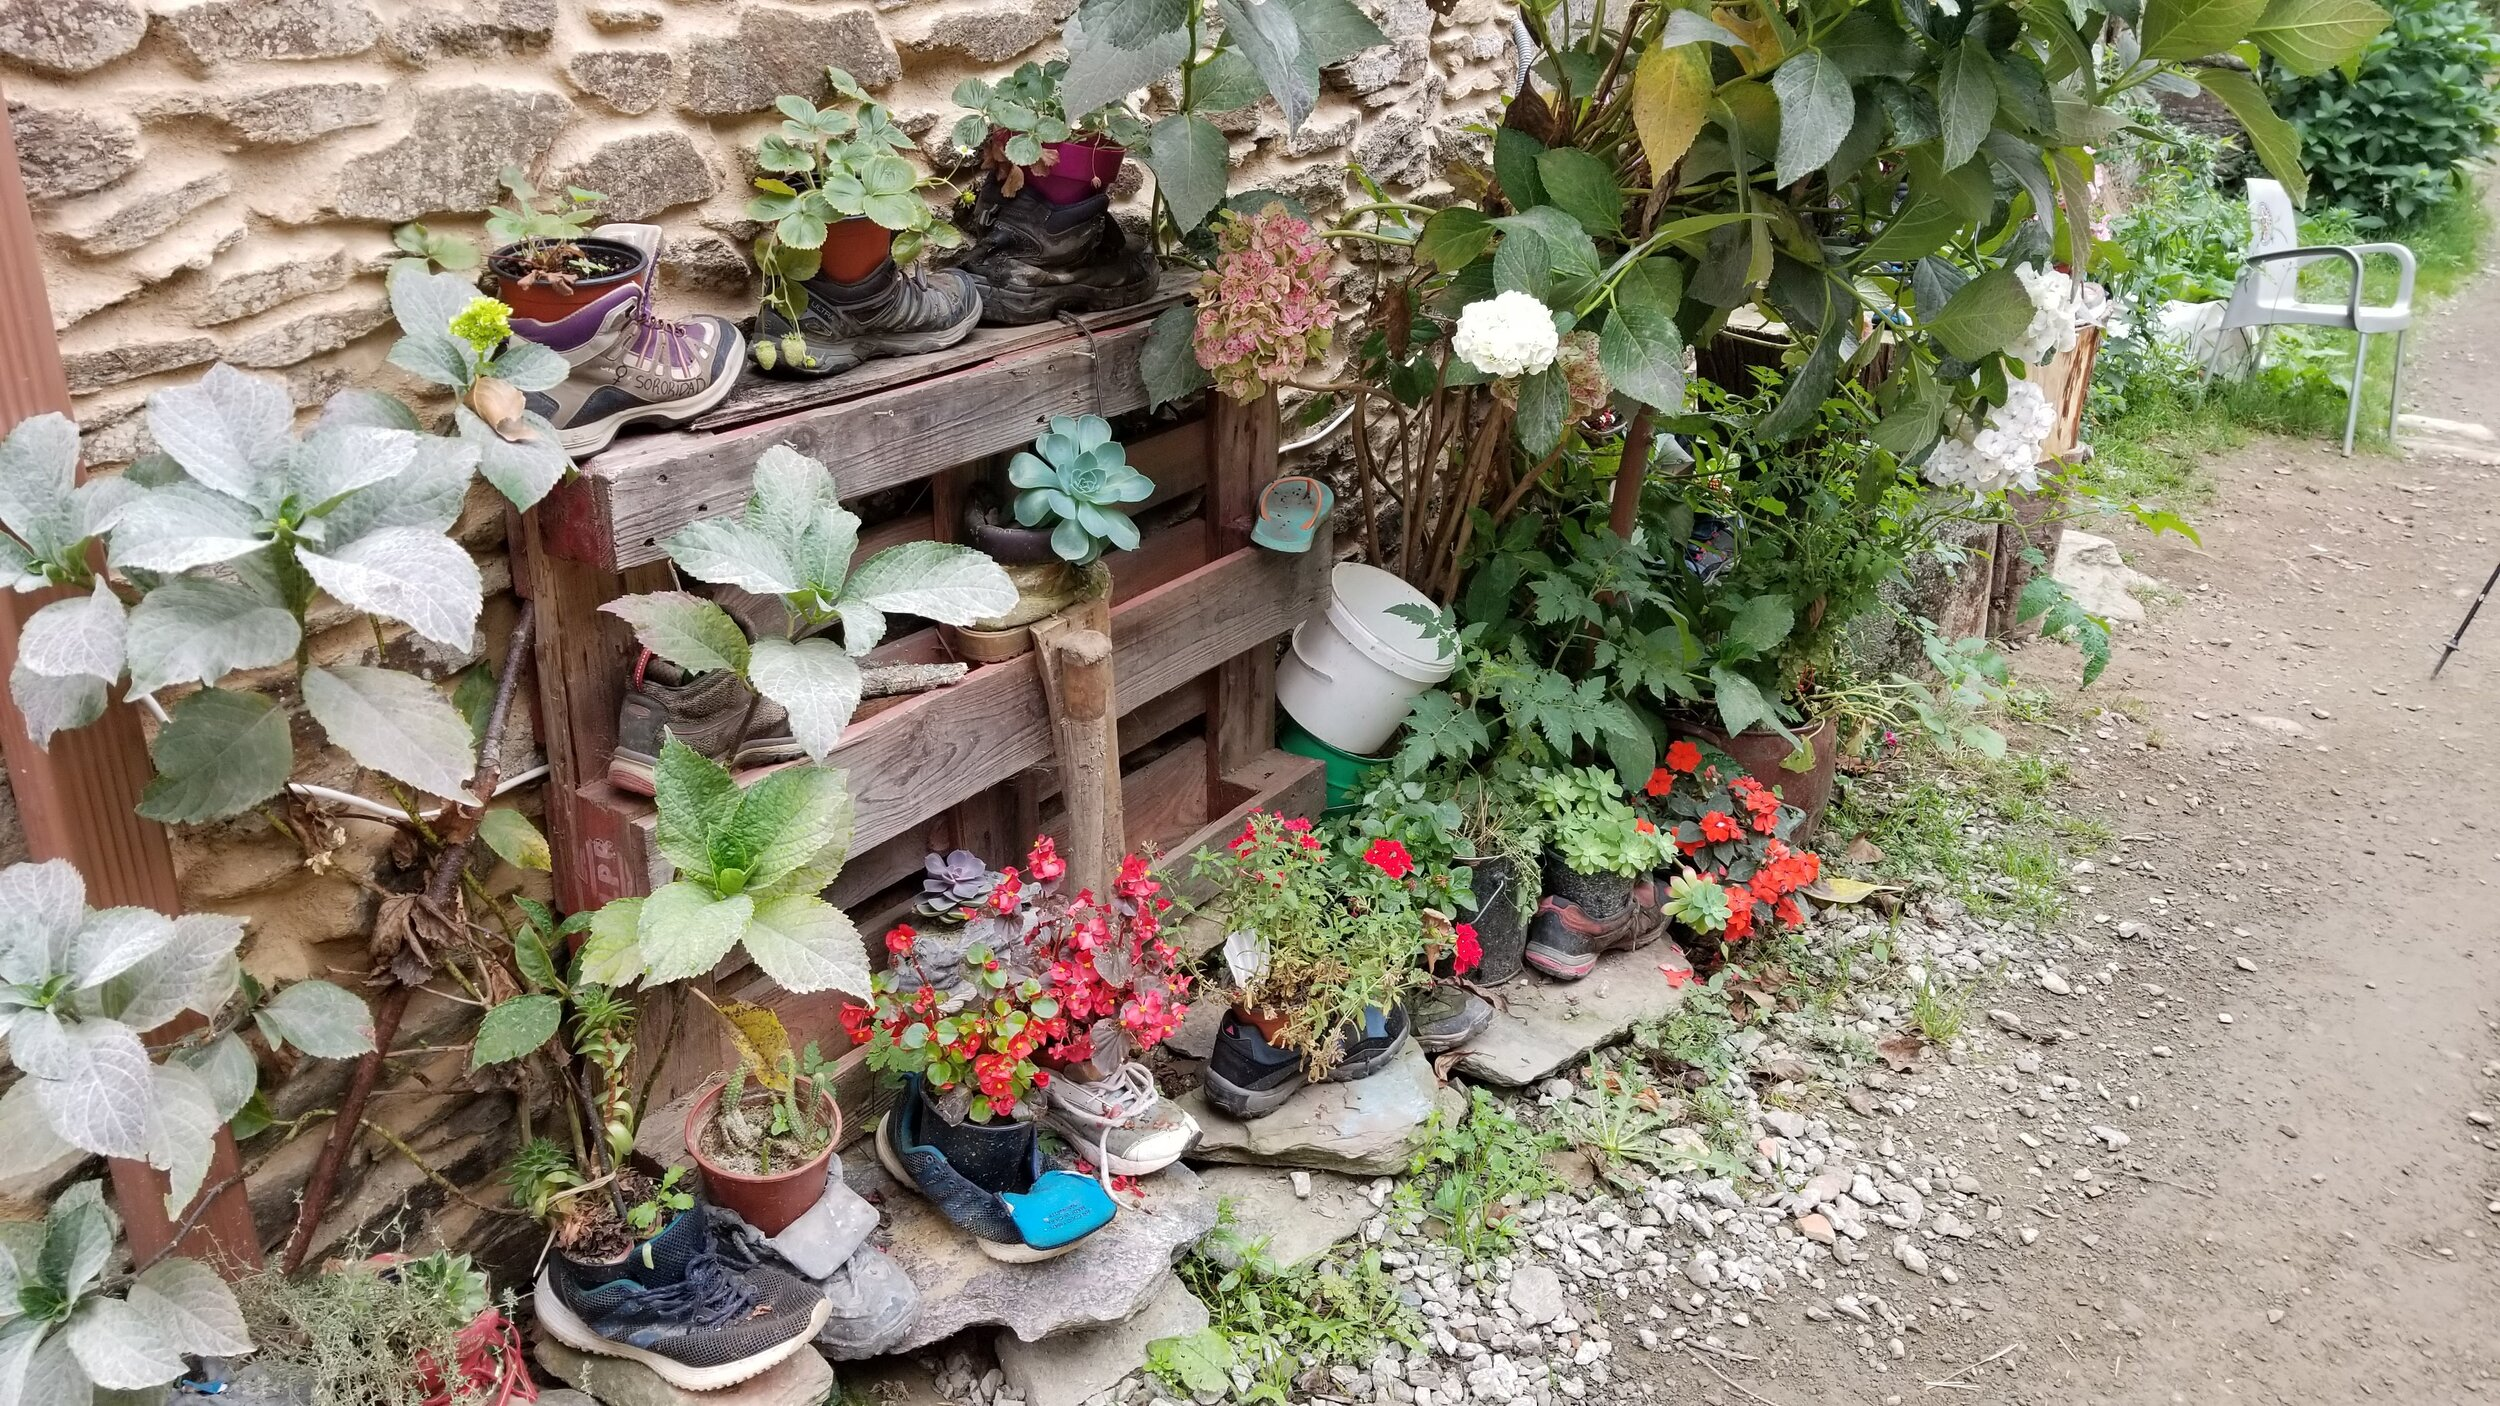 A creative use for old hiking boots!